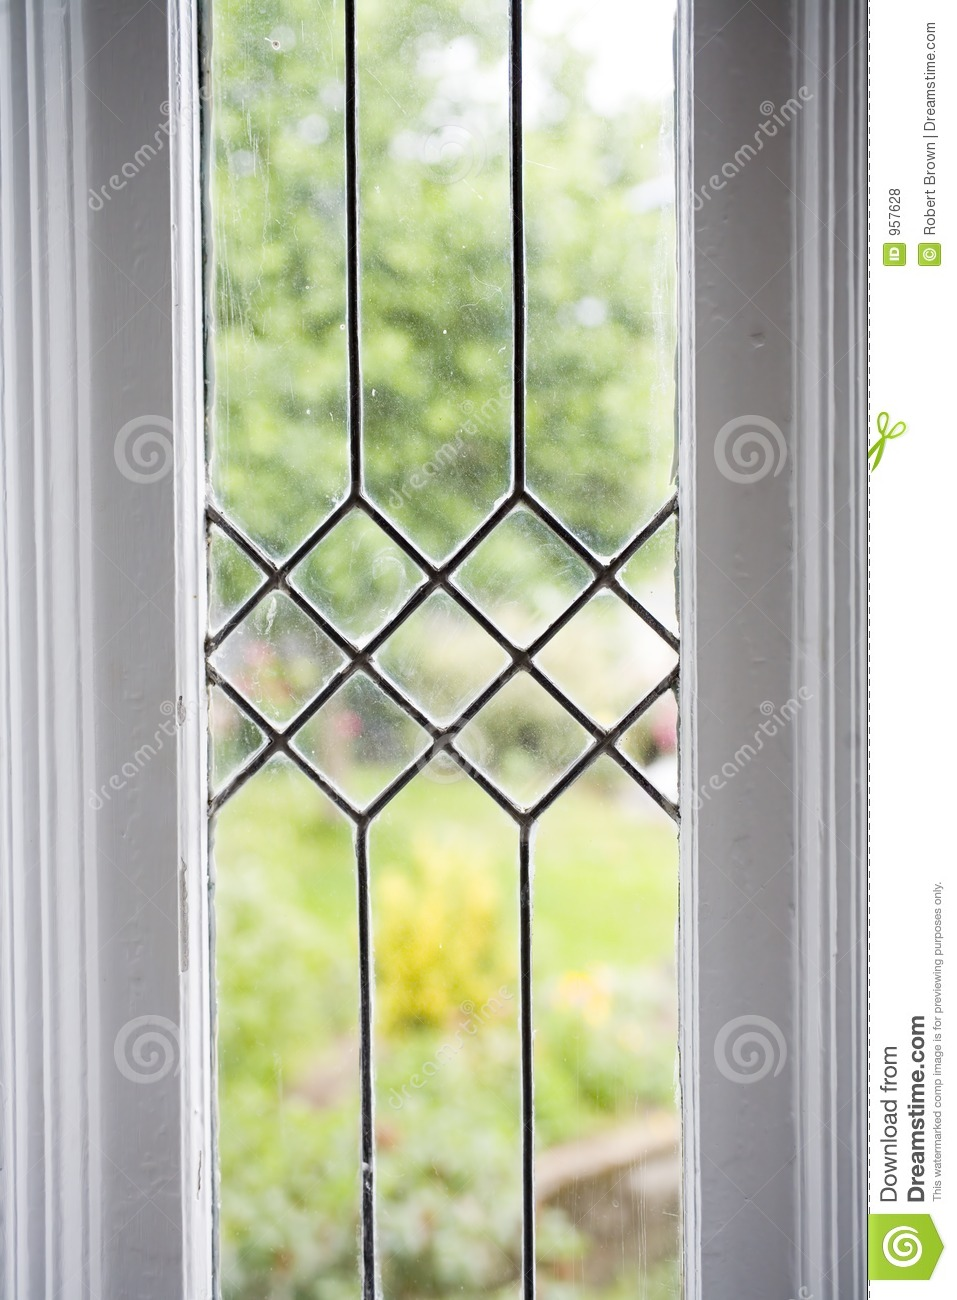 Stock Photo Of A Leaded Glass Window Stock Photo Image